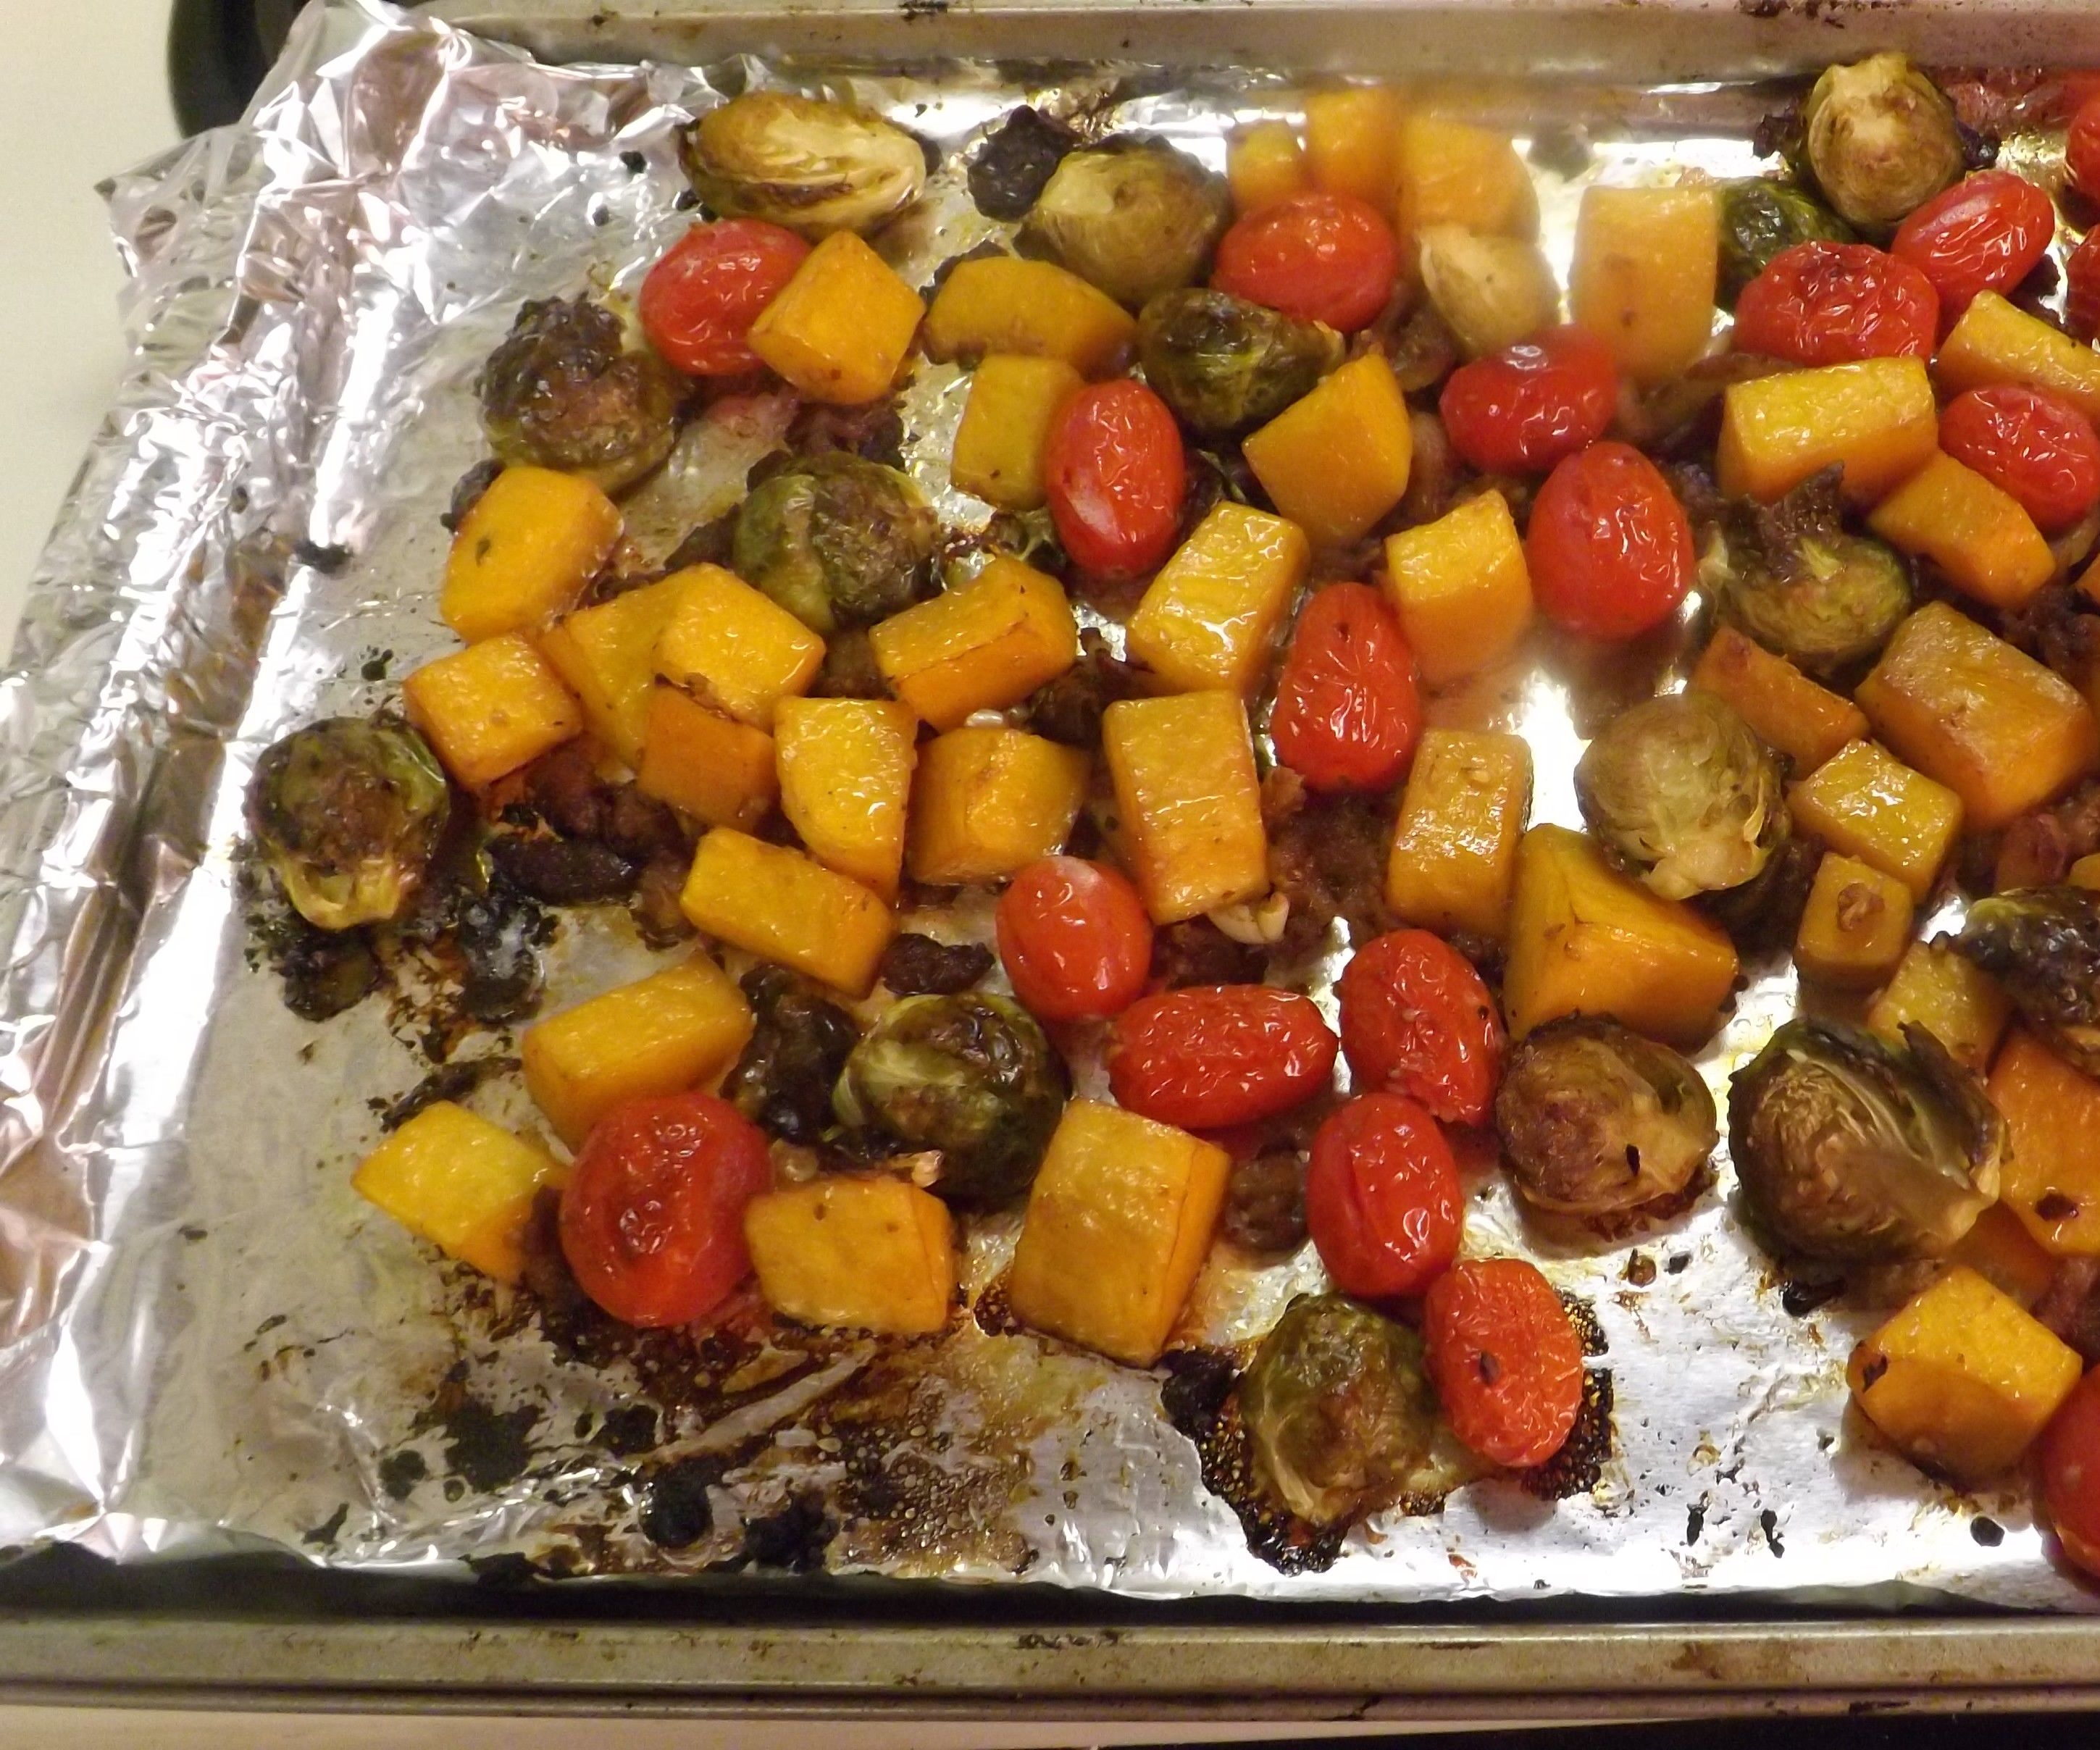 BALSAMIC ROASTED BRUSSELS SPROUTS, BUTTERNUT SQUASH & GRAPE TOMATOES